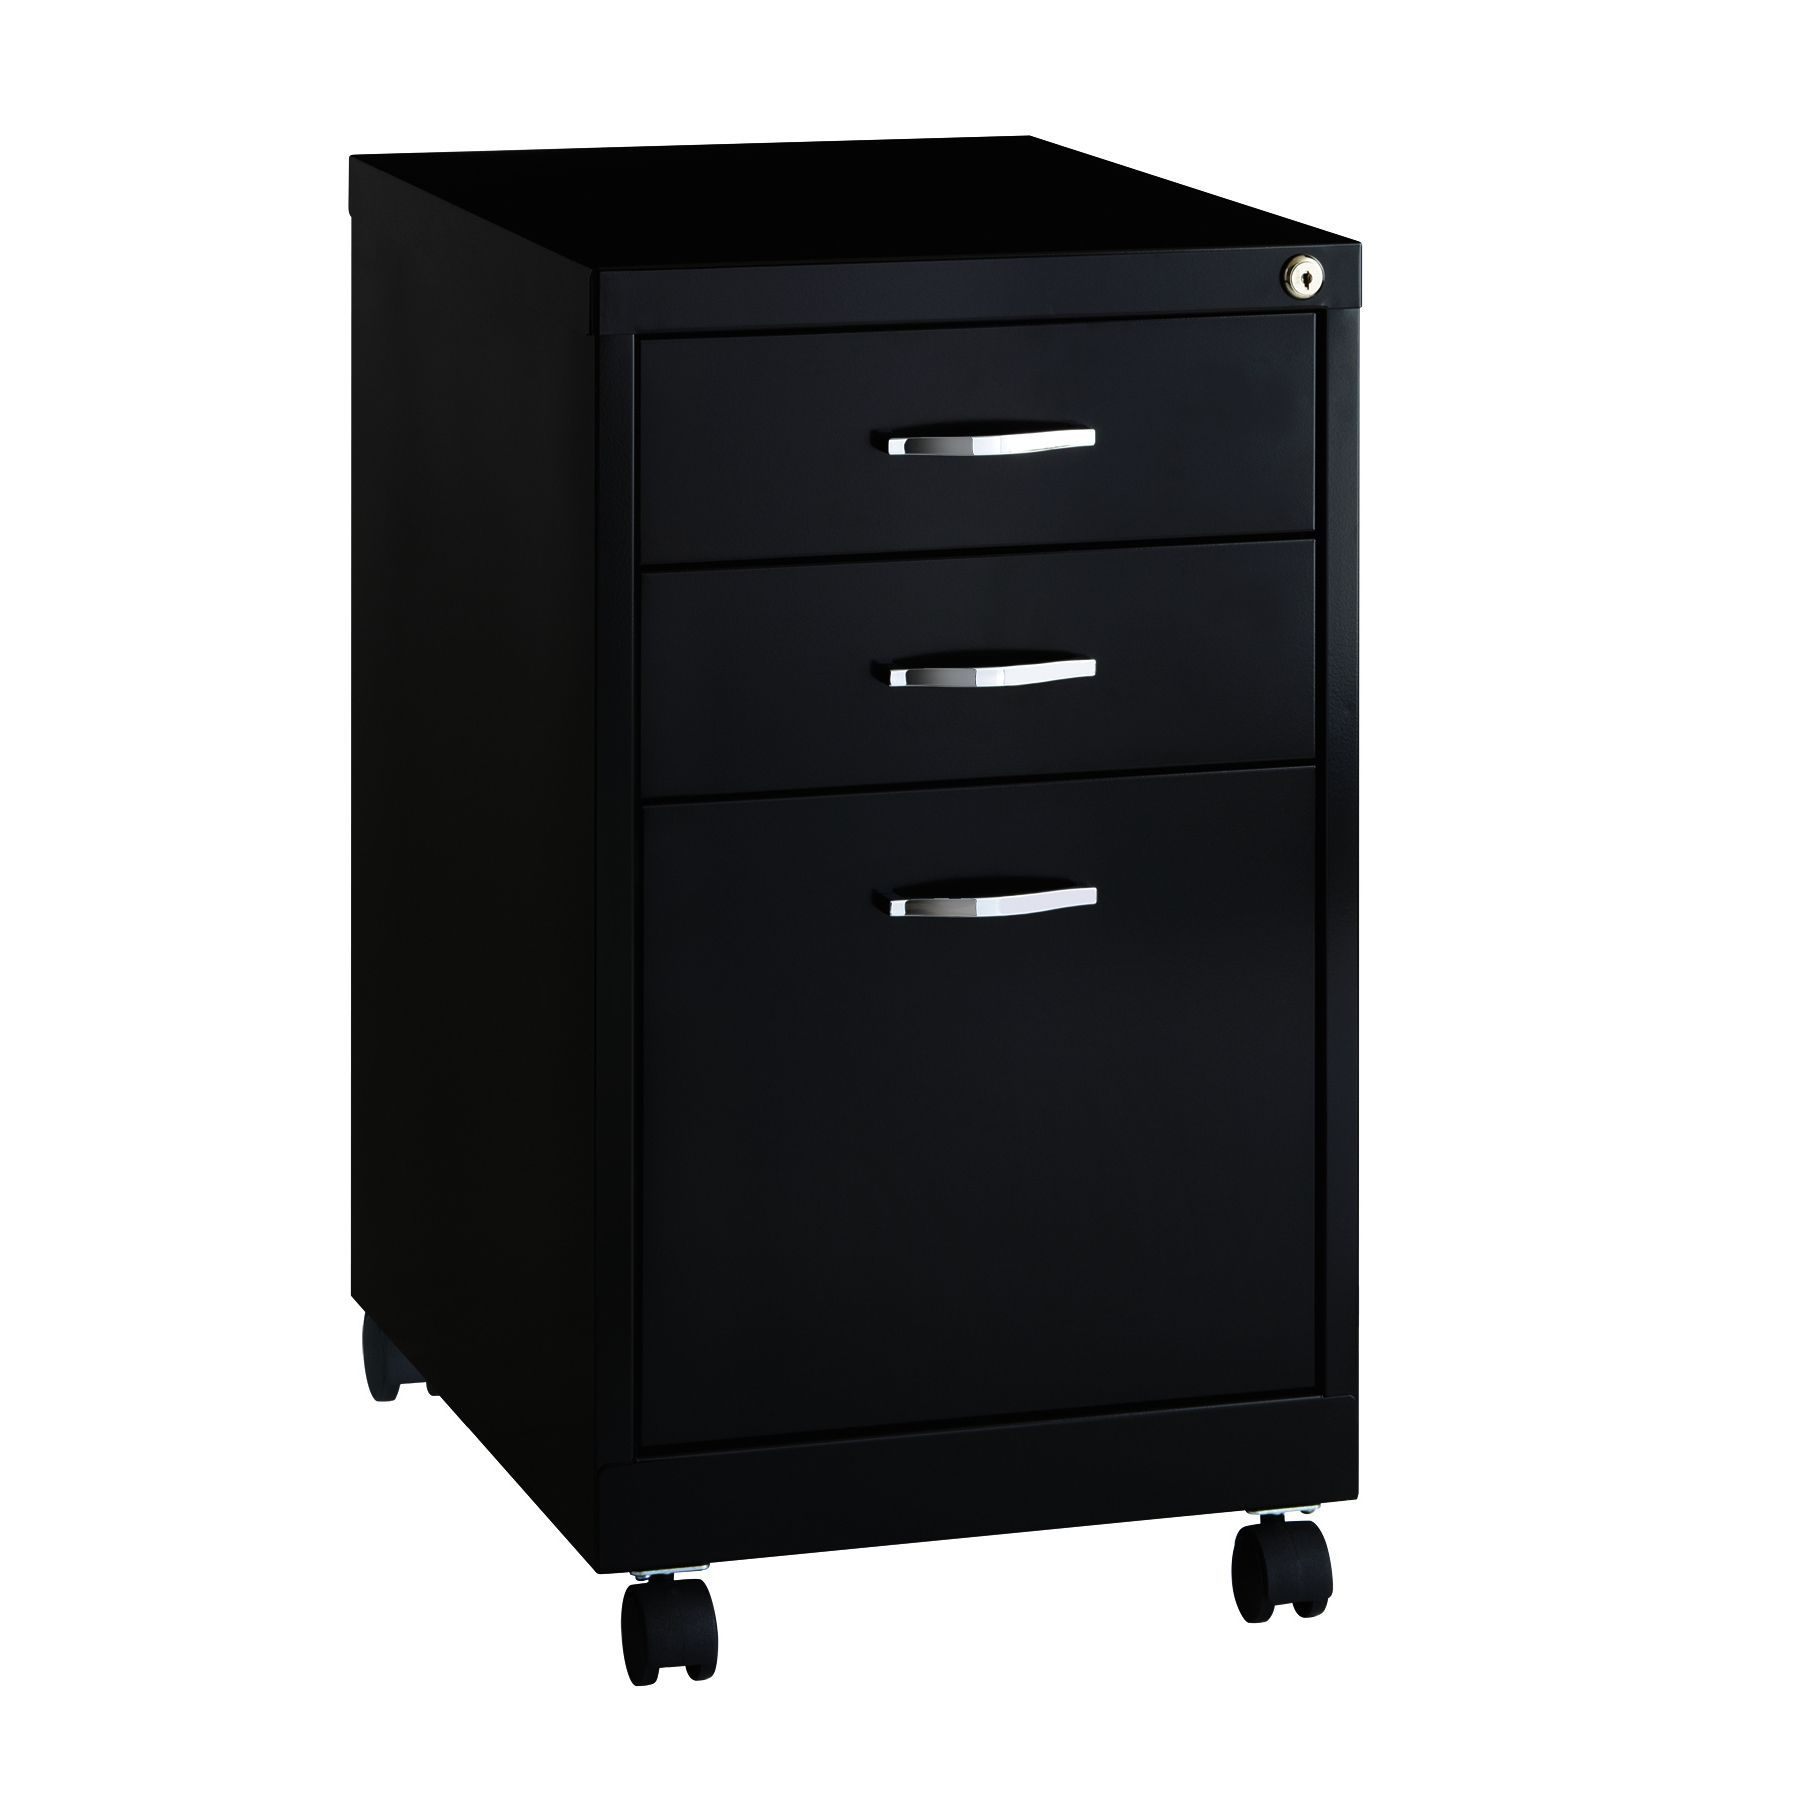 BBF Soho Pedestal 19 inch Deep 3 drawer fice File Cabinet Black